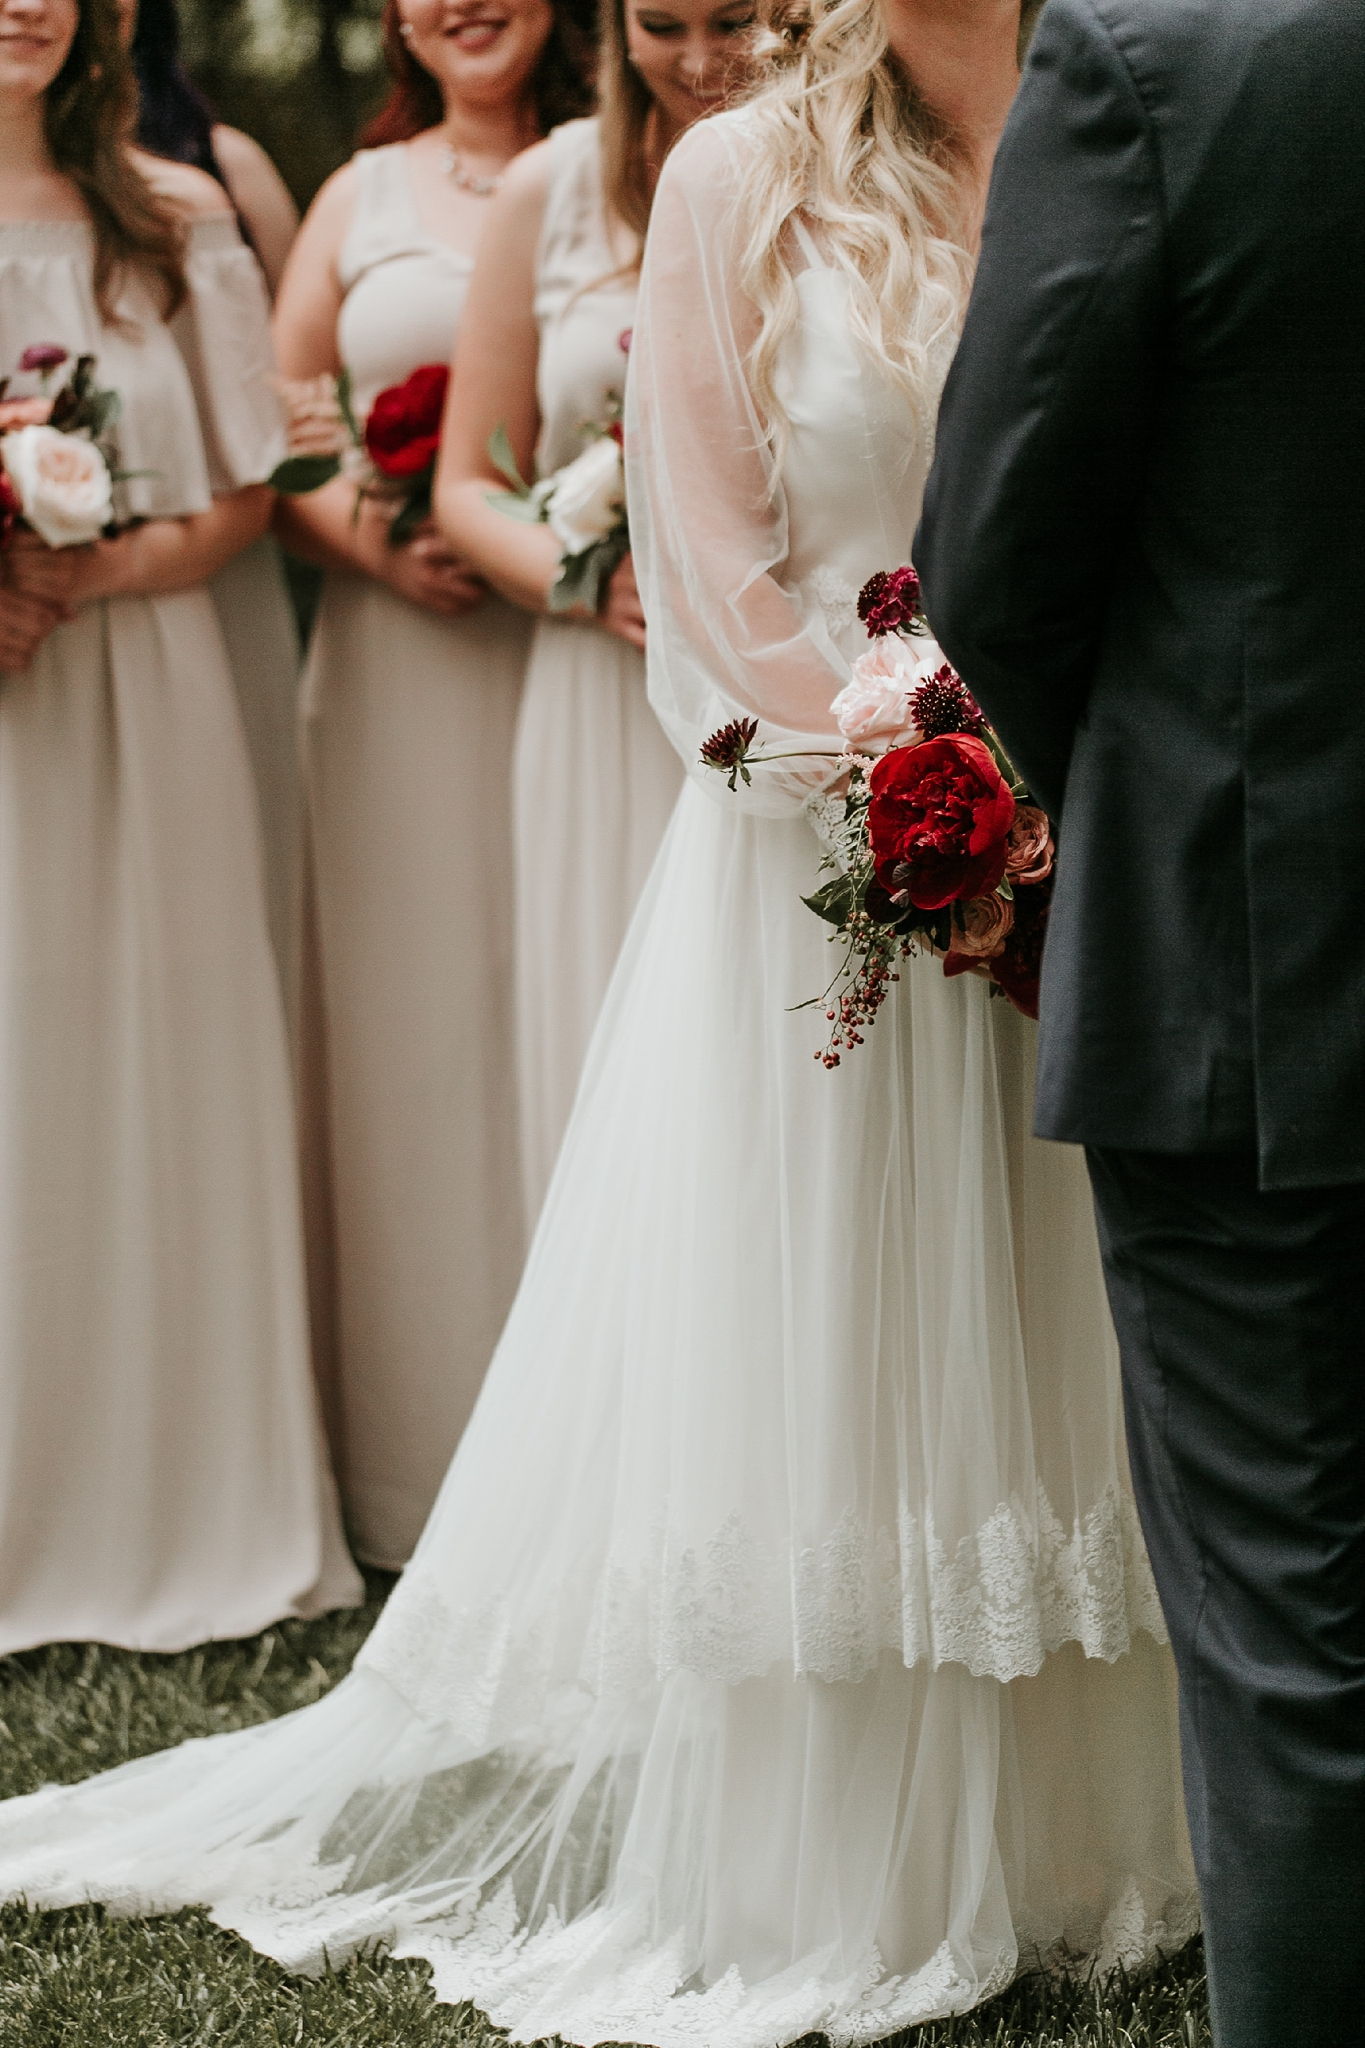 Alicia+lucia+photography+-+albuquerque+wedding+photographer+-+santa+fe+wedding+photography+-+new+mexico+wedding+photographer+-+new+mexico+wedding+-+wedding+gowns+-+bridal+gowns+-+a+line+wedding+gown_0033.jpg